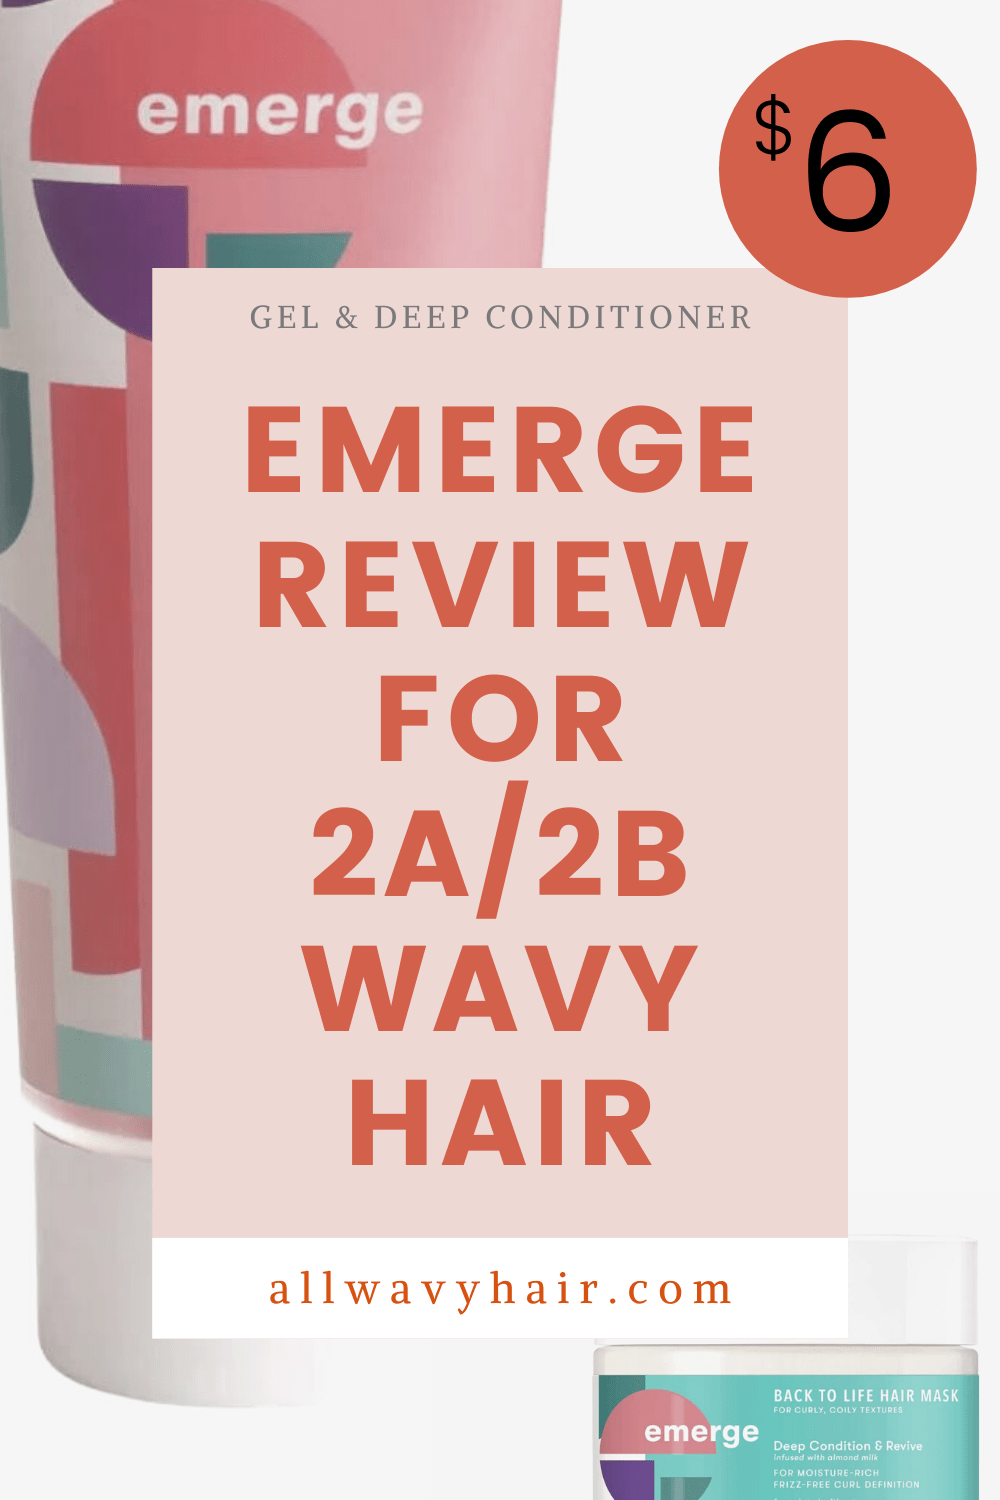 Emerge Hair For Wavy Hair First Impression Review Emerge Style Goals Gel Emerge Back To Life Conditioning And Revive Hair Mask Review For Wavy Hair All Wavy Hair